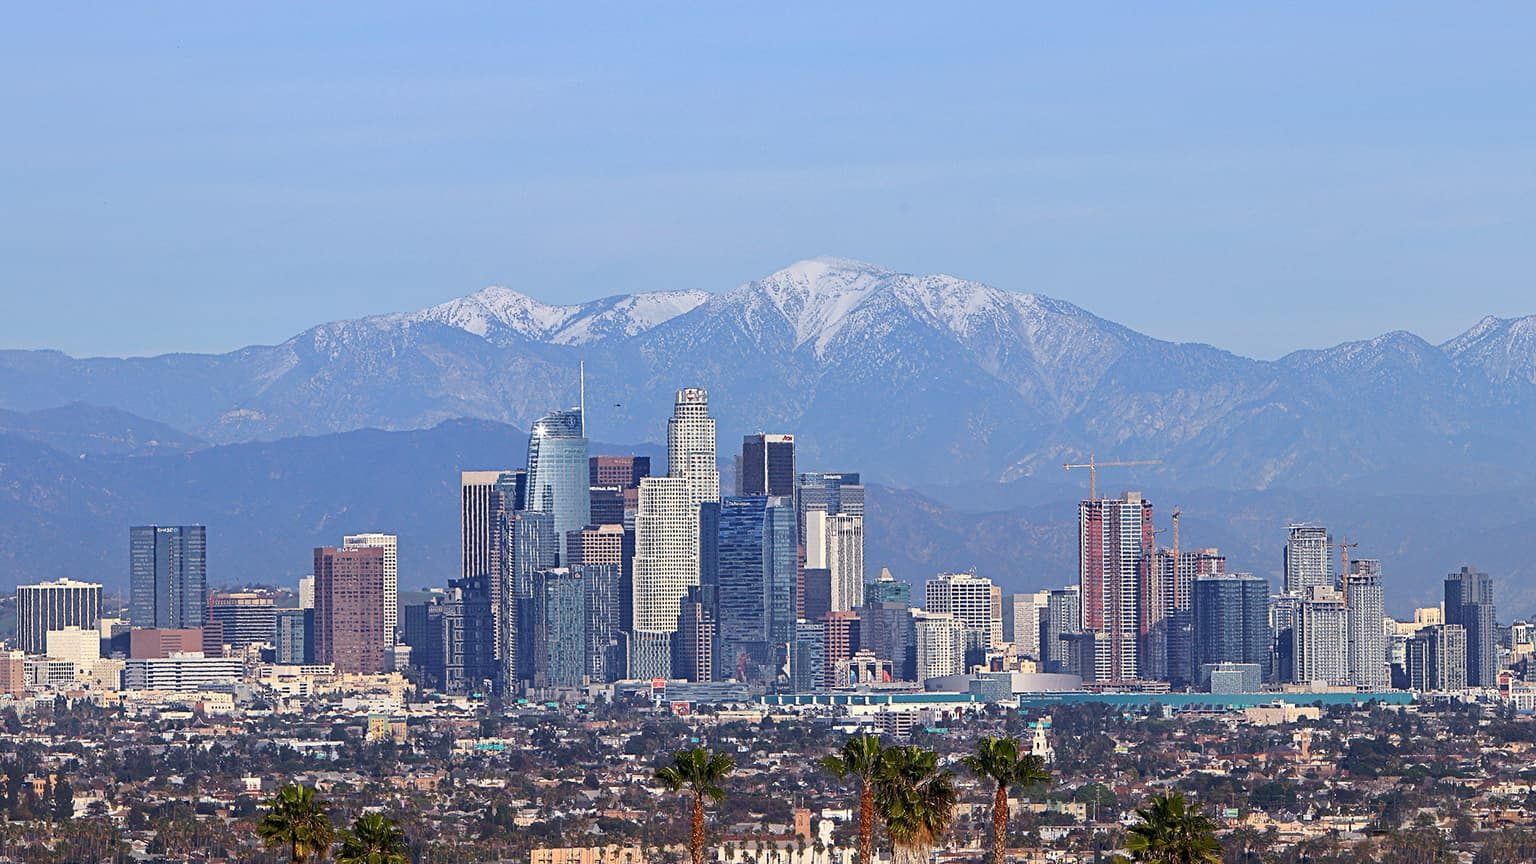 Skyline of Los Angeles with snowcapped moutain as background